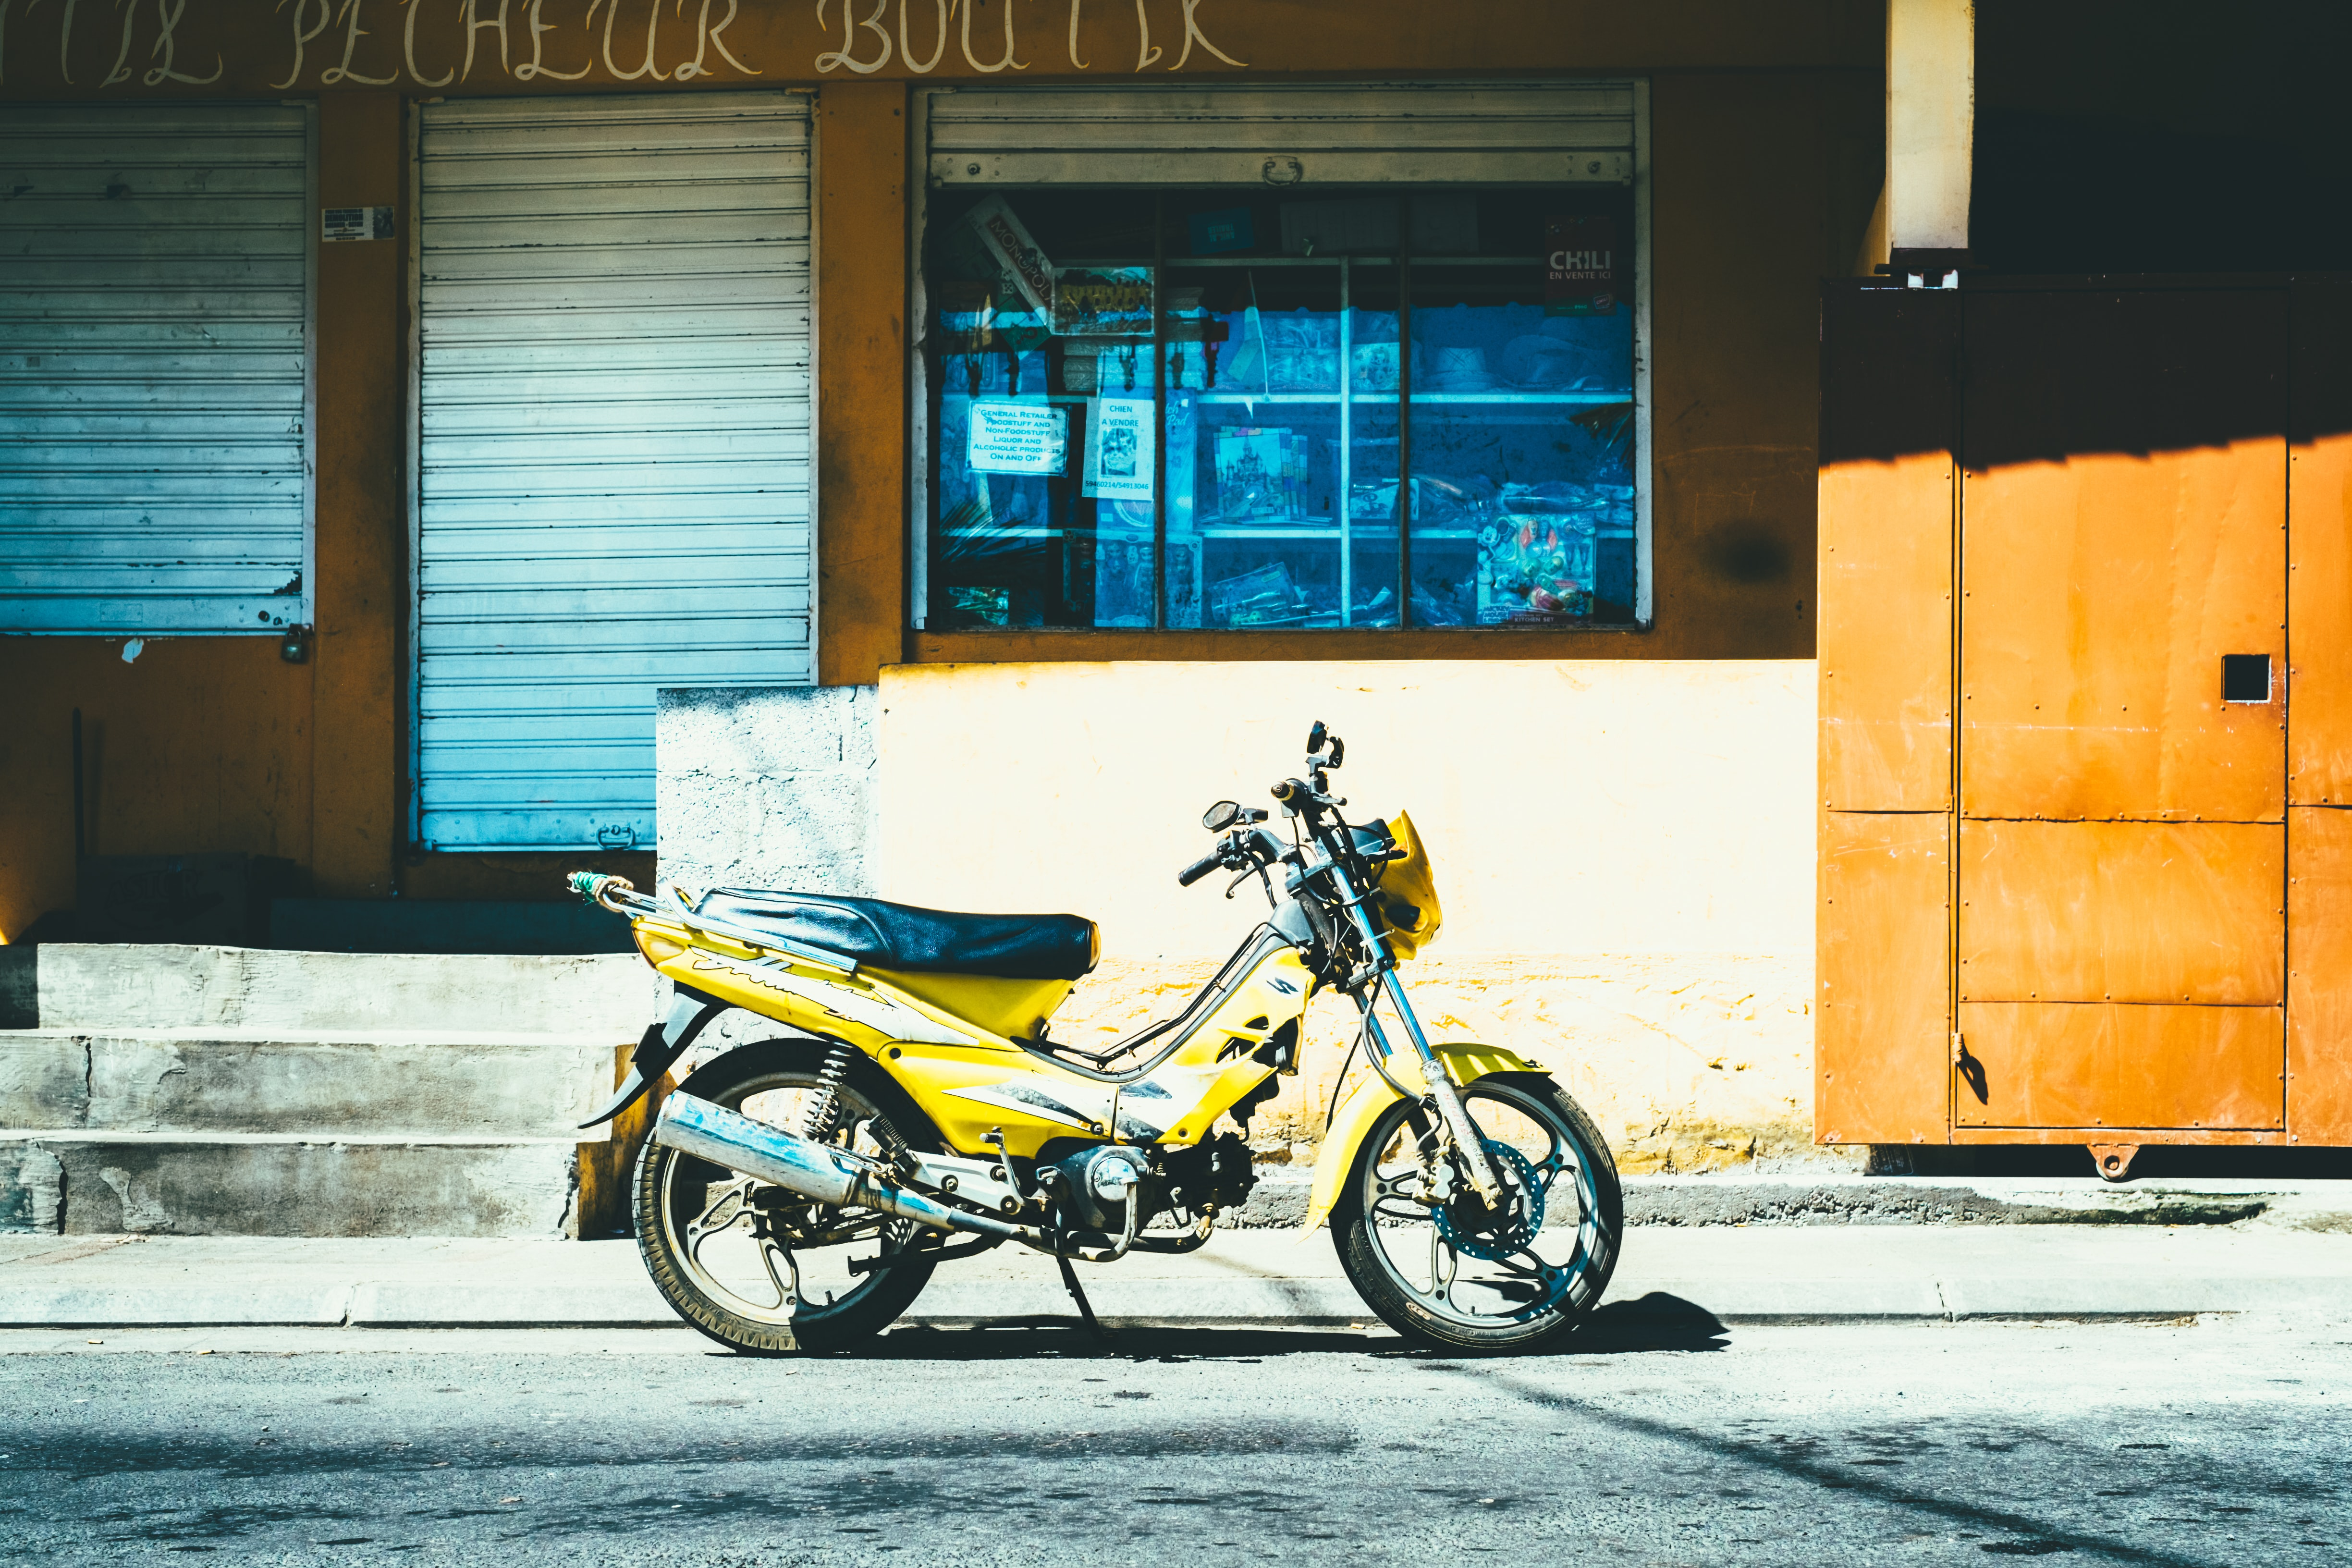 yellow motorcycle parked outside store